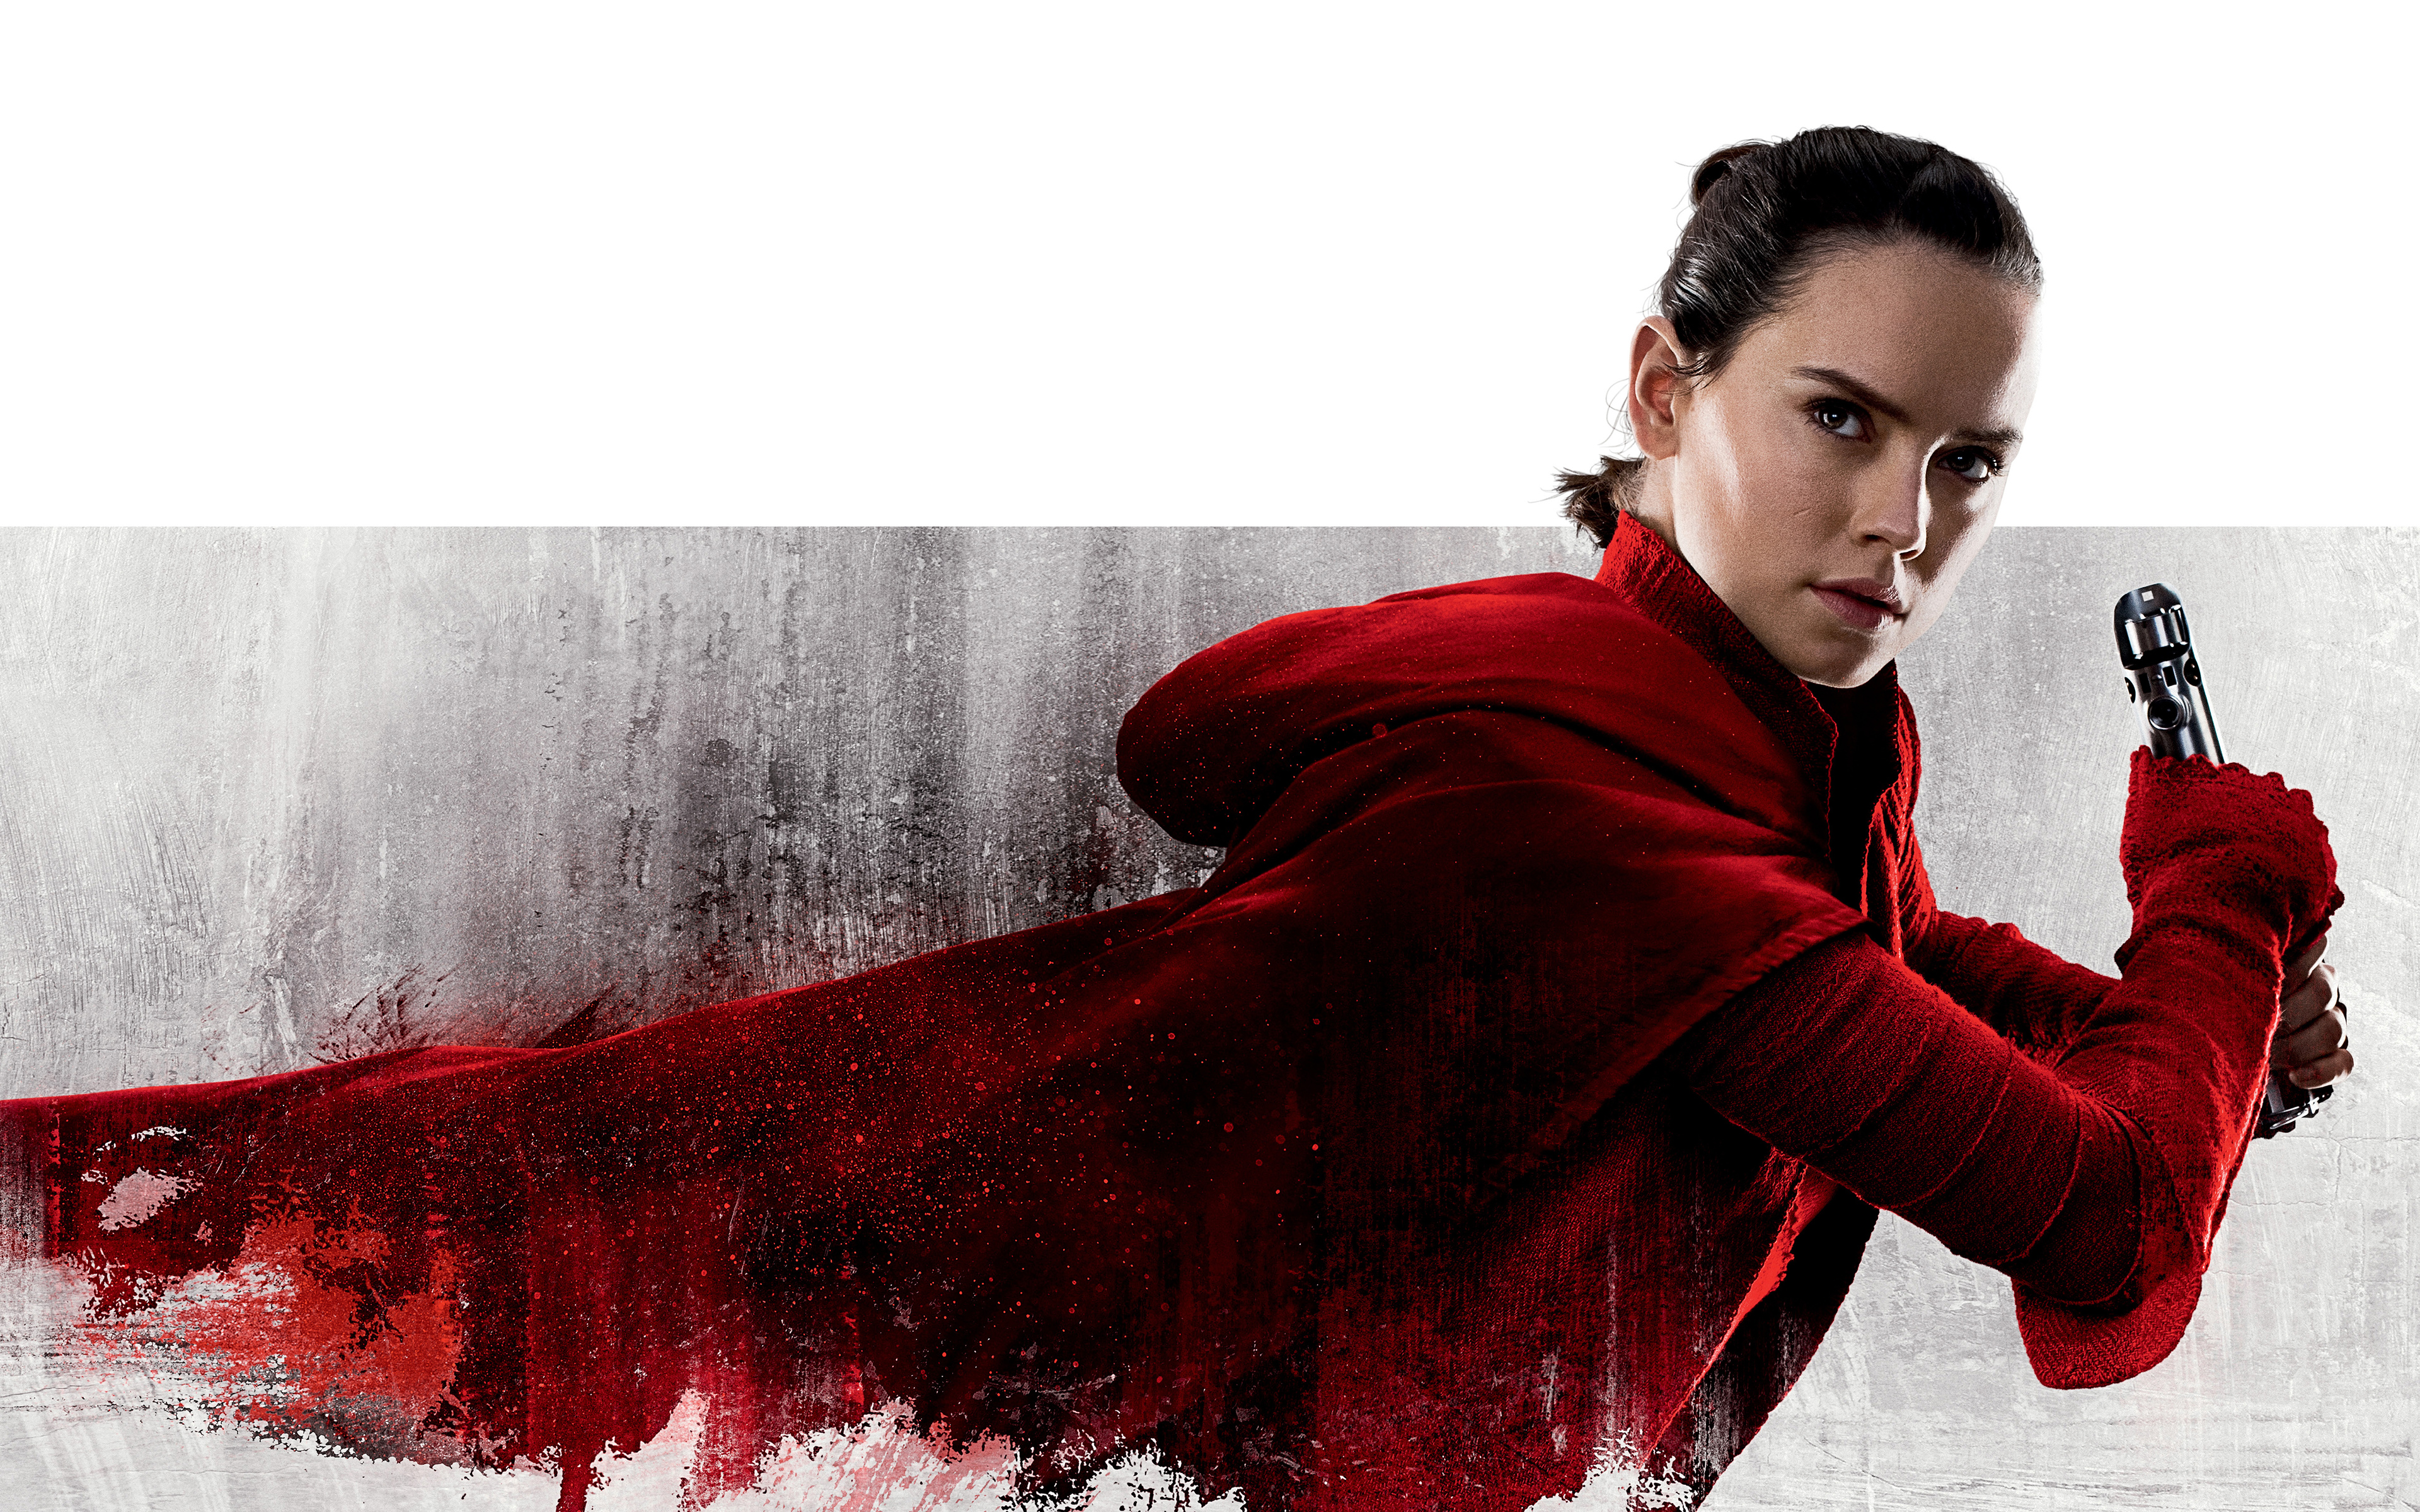 Download Wallpaper From Movie Star Wars The Last Jedi With Tags Backgrounds Daisy Ridley Rey 2017